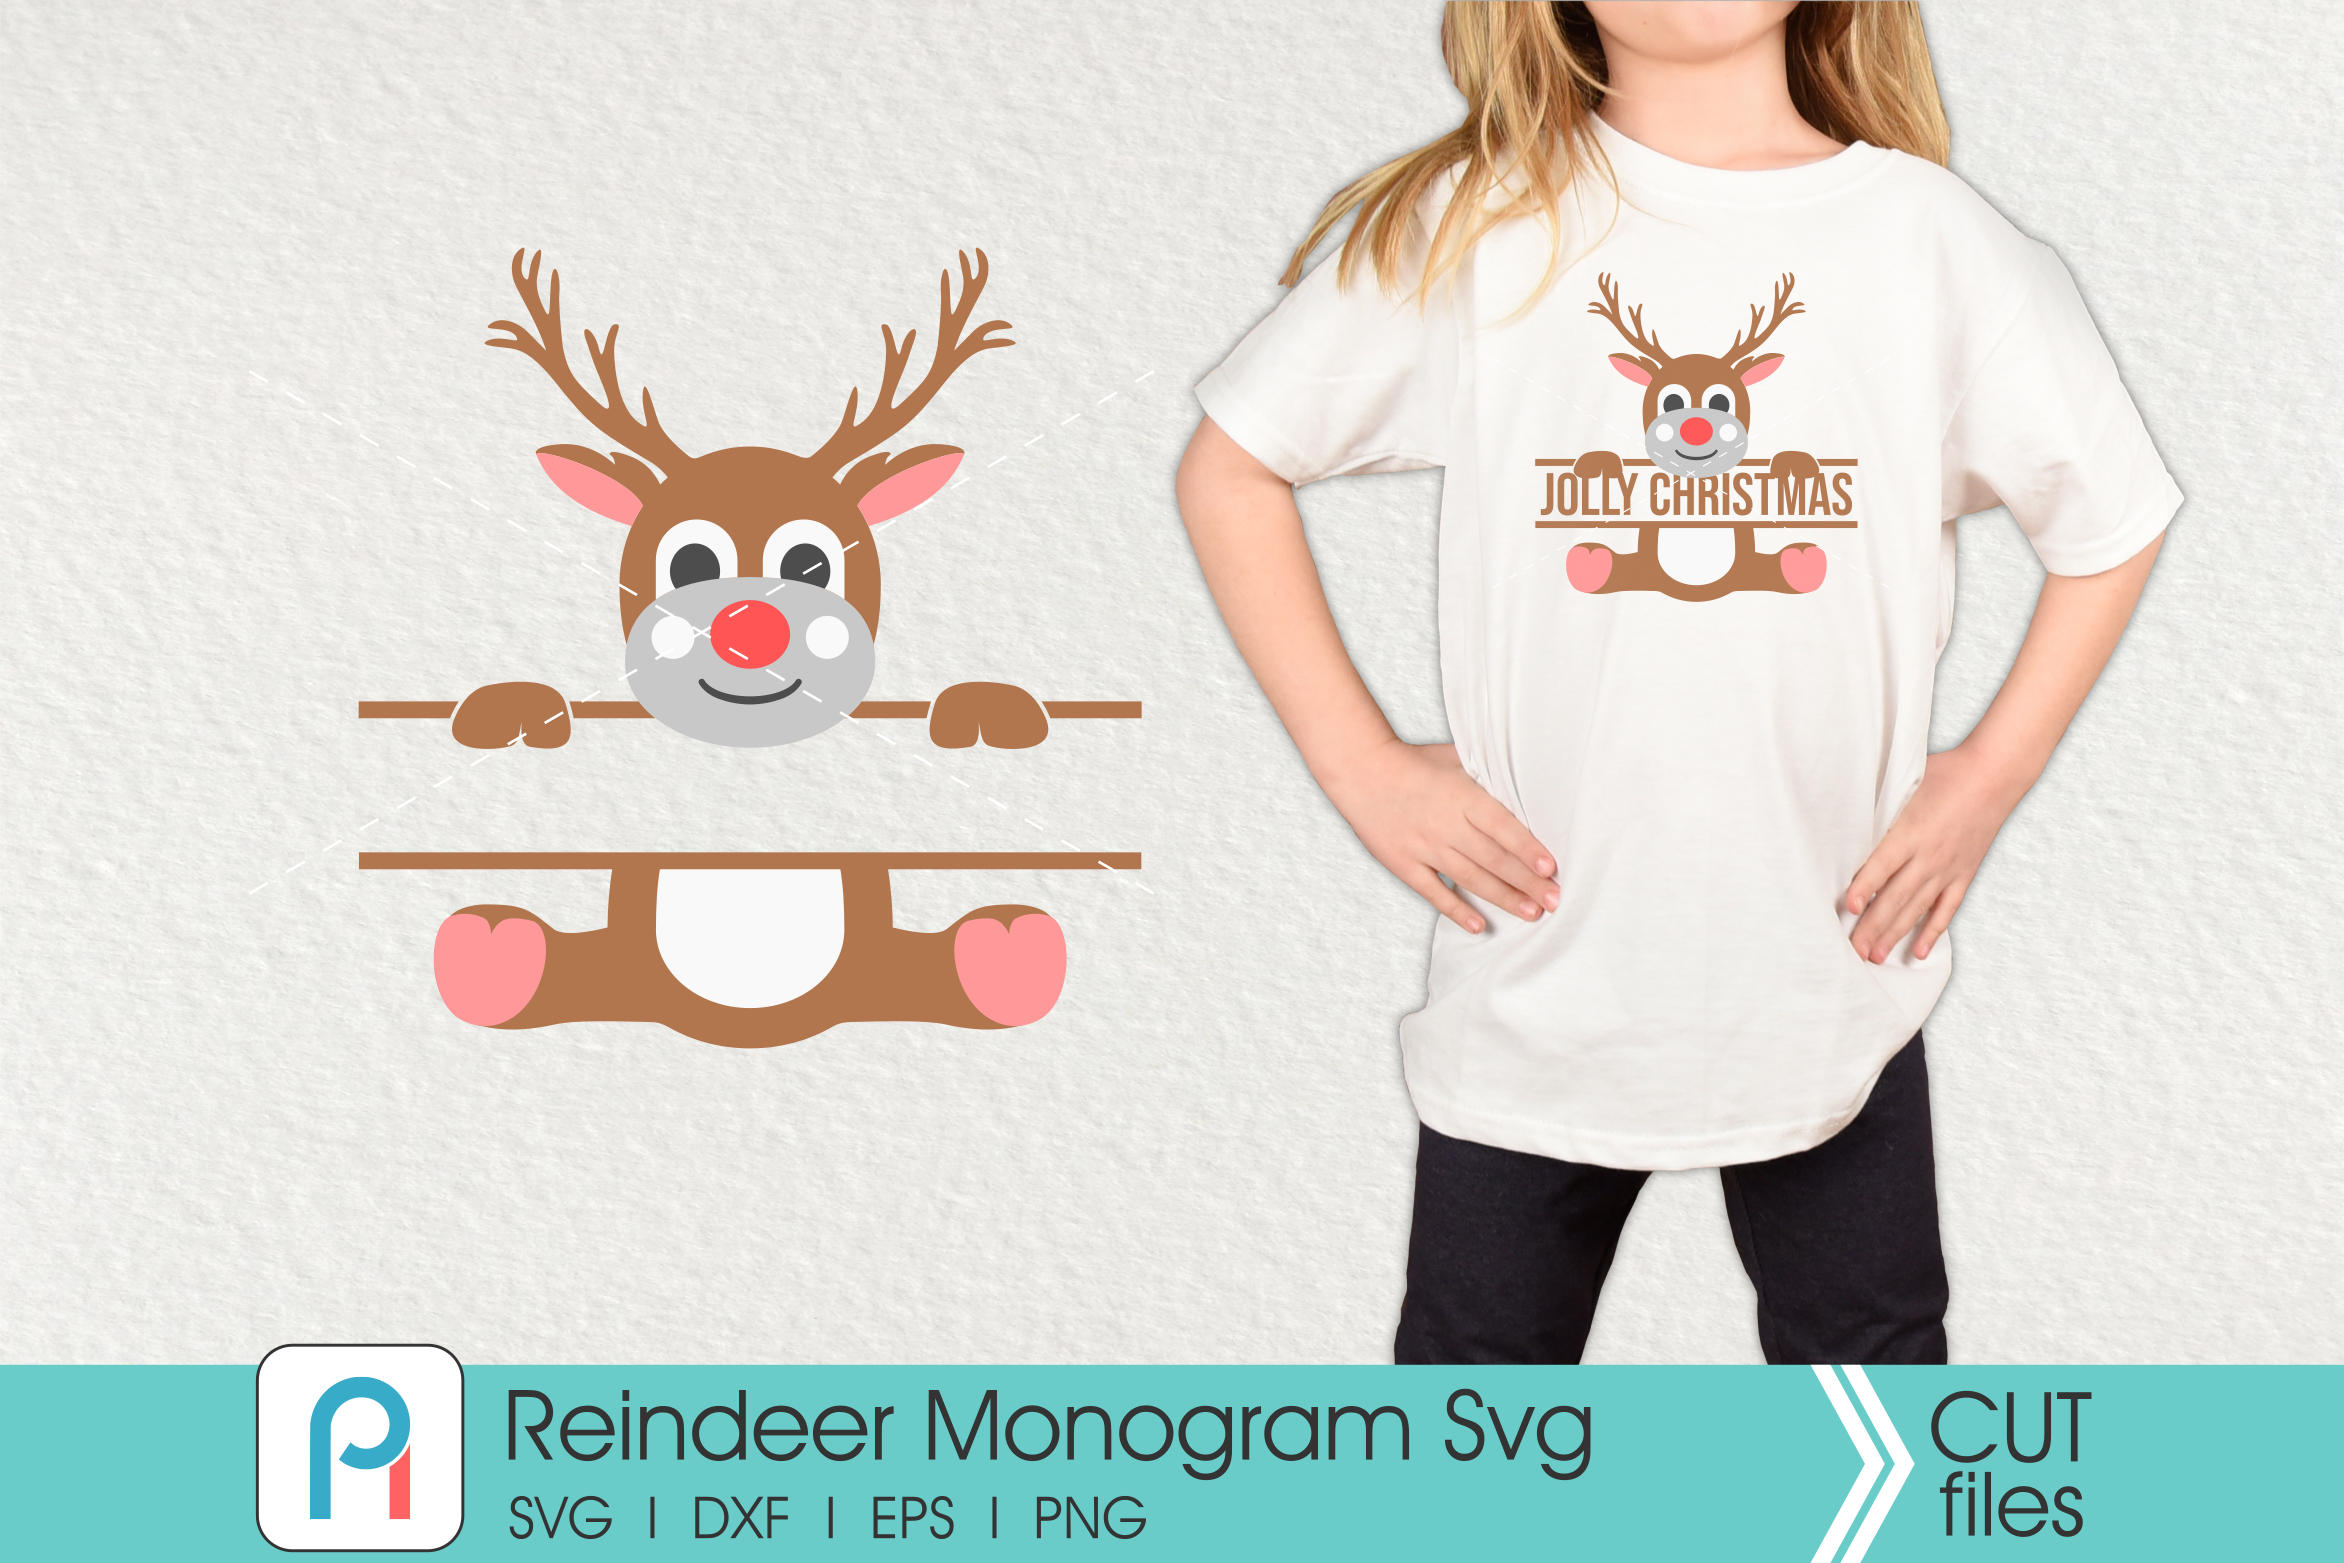 Download Free Reindeer Monogram Graphic By Pinoyartkreatib Creative Fabrica for Cricut Explore, Silhouette and other cutting machines.